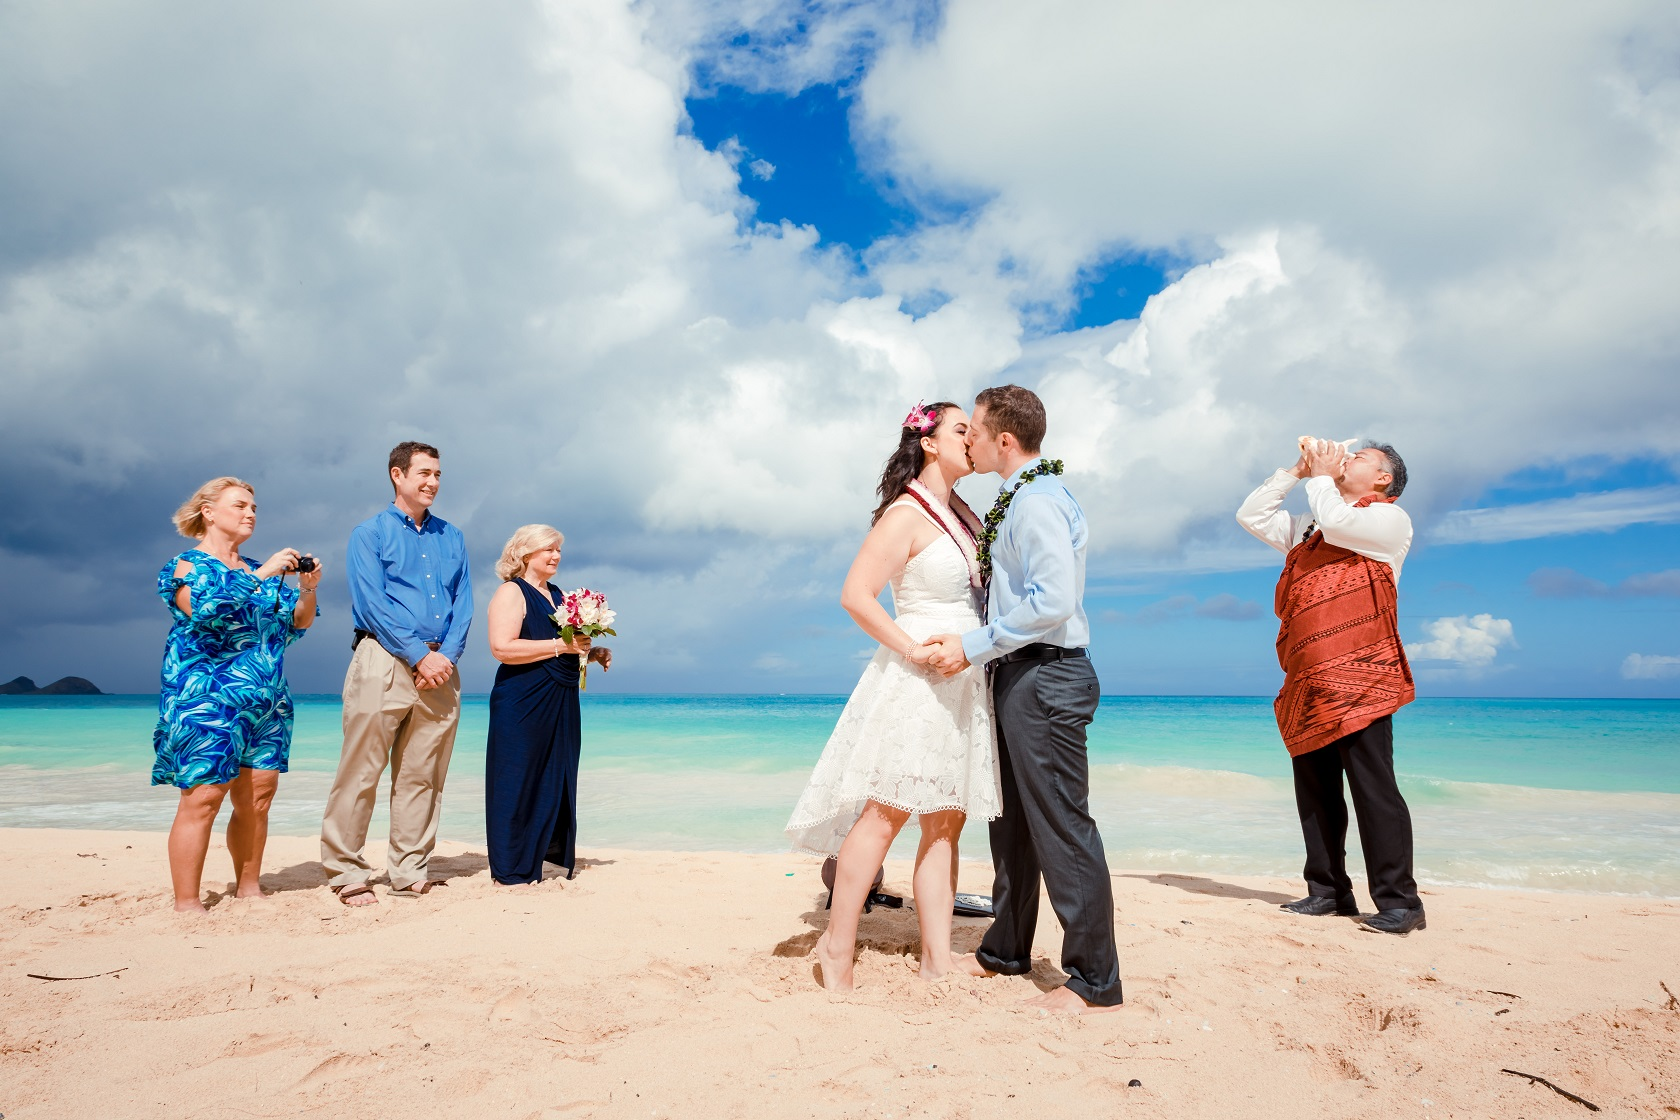 oahu beach wedding elopement ceremony